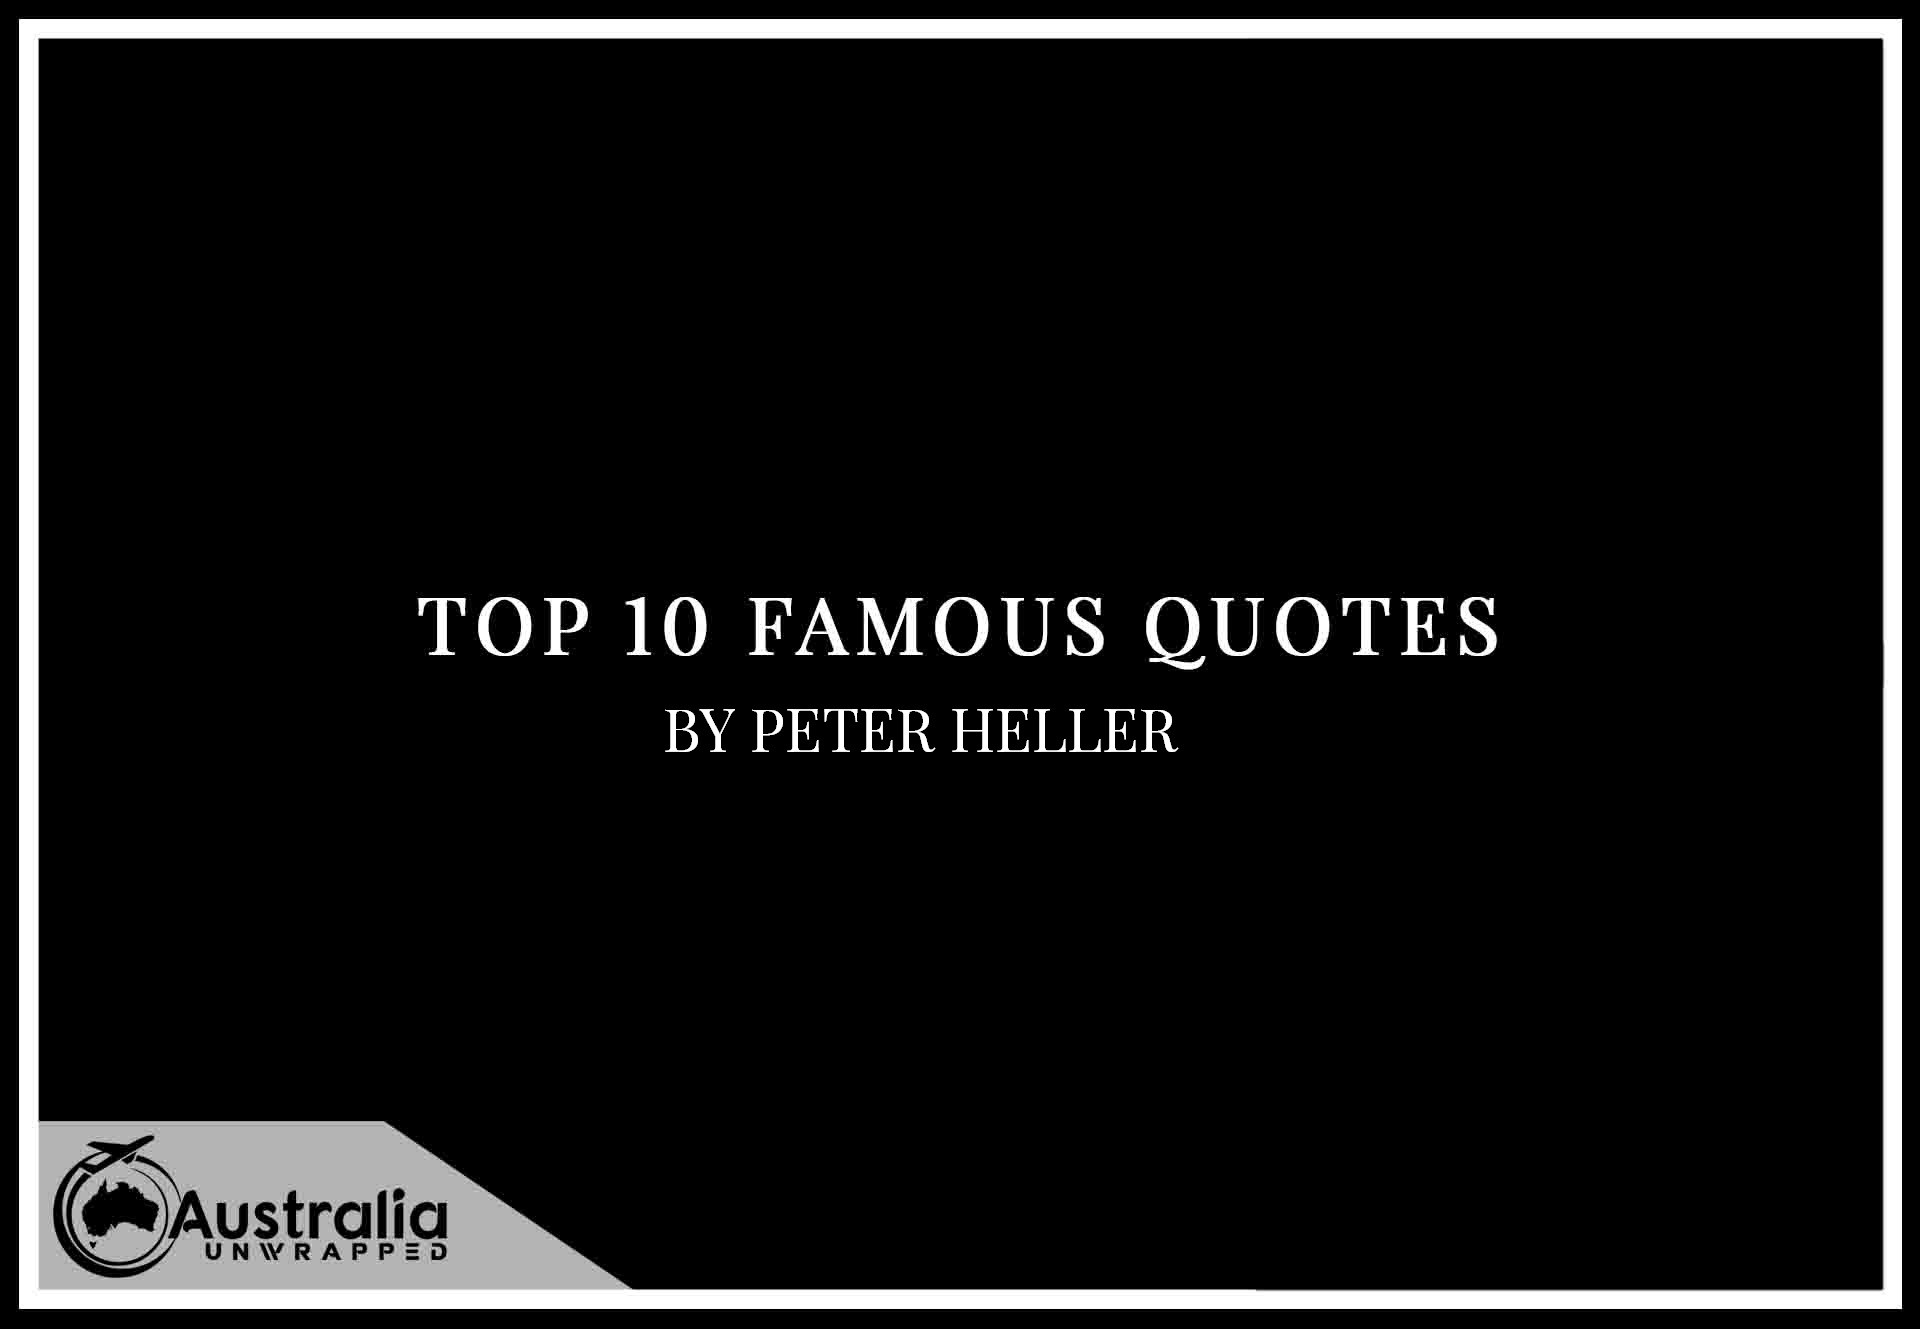 Top 10 Famous Quotes by Author Peter Heller